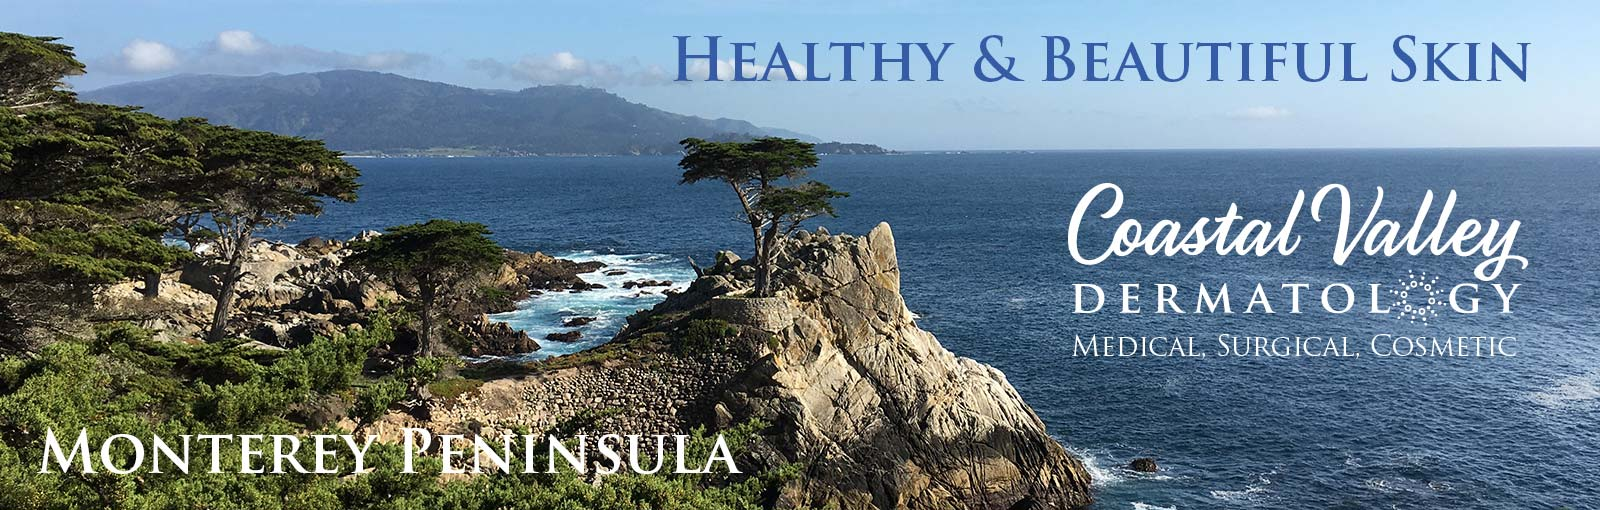 coastal-valley-dermatology-carmel-skin-healthy-beautiful-photo